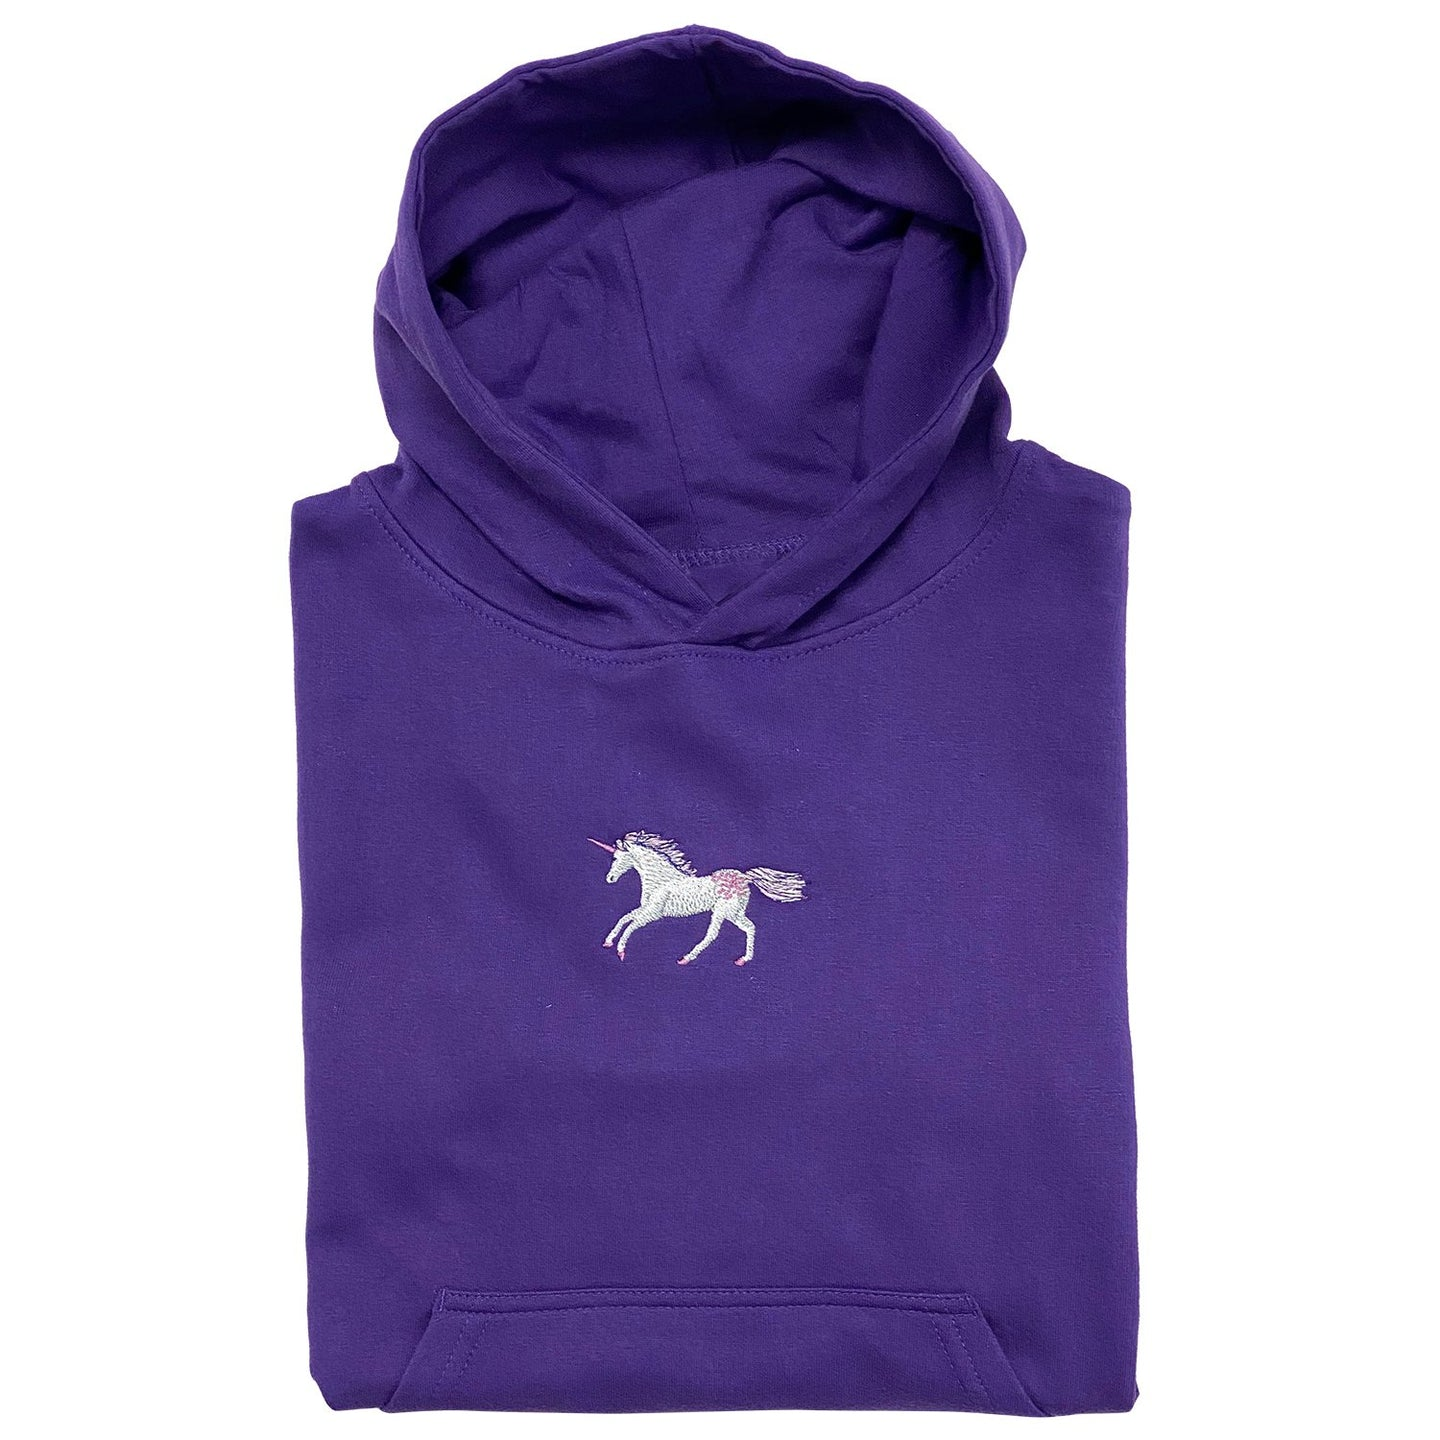 20539 - Unicorns Embroidered Youth Hoodie